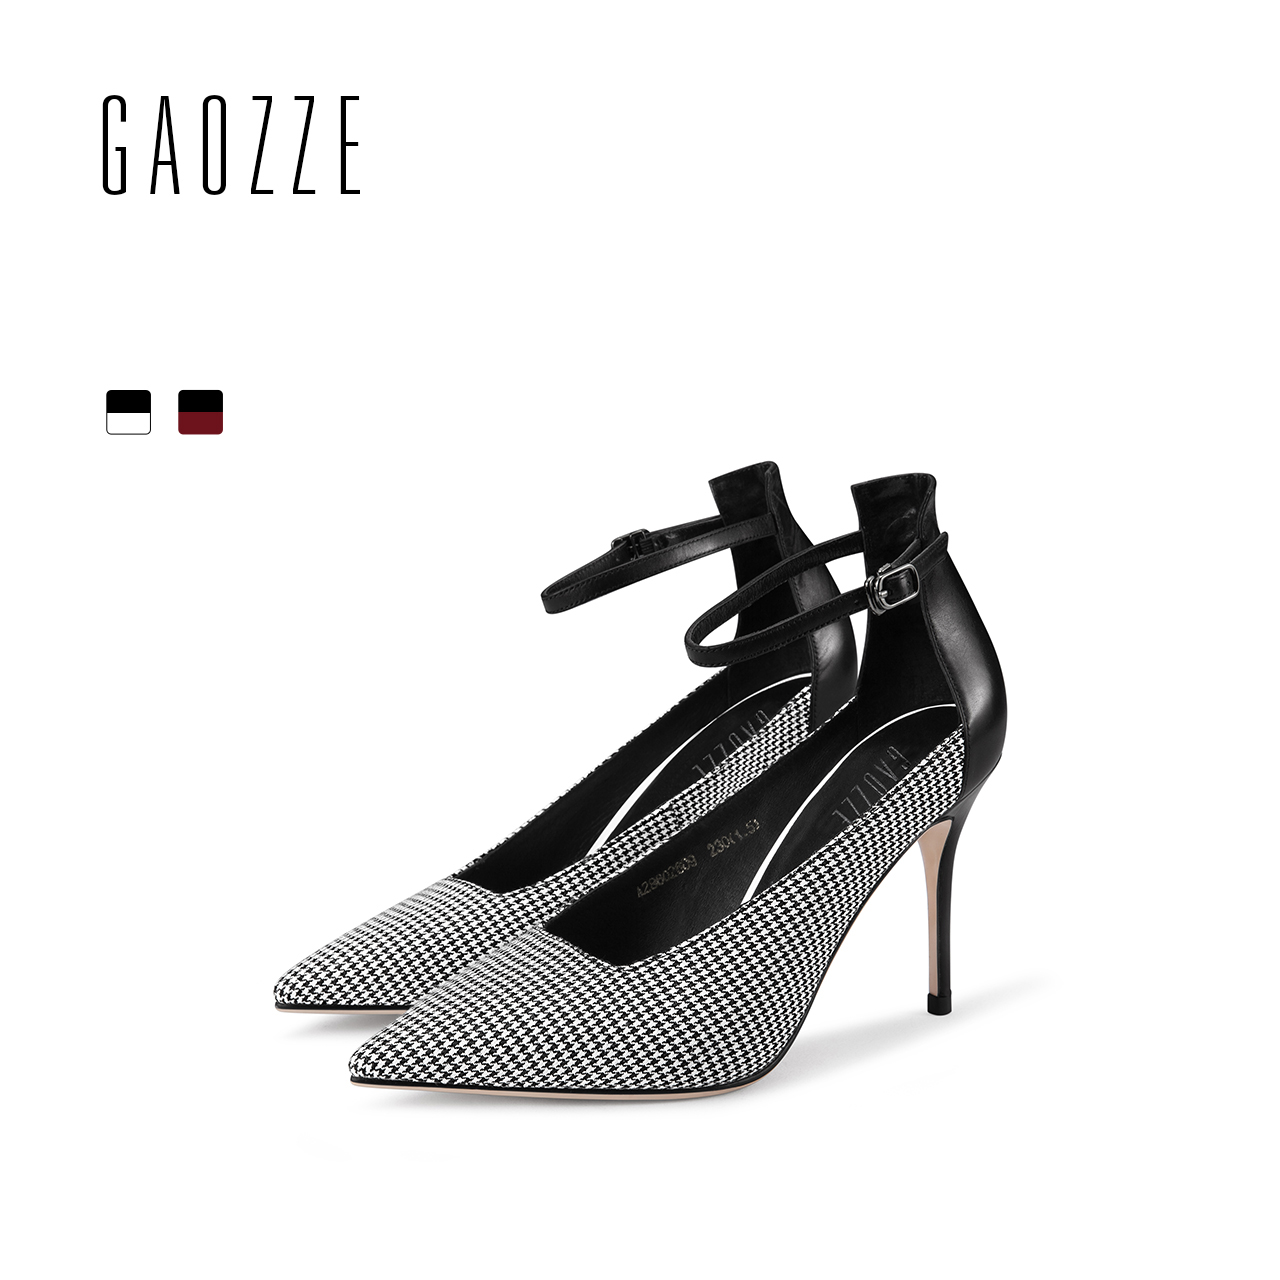 GAOZZE Fashion Plaid Cloth Ladies Pumps Shoes British style Pointed Toe Buckle Strap Stiletto High Heels Women 2018 Spring New xiaying smile woman pumps shoes women mary janes british style fashion new elegant spring square heels buckle strap rubber shoe